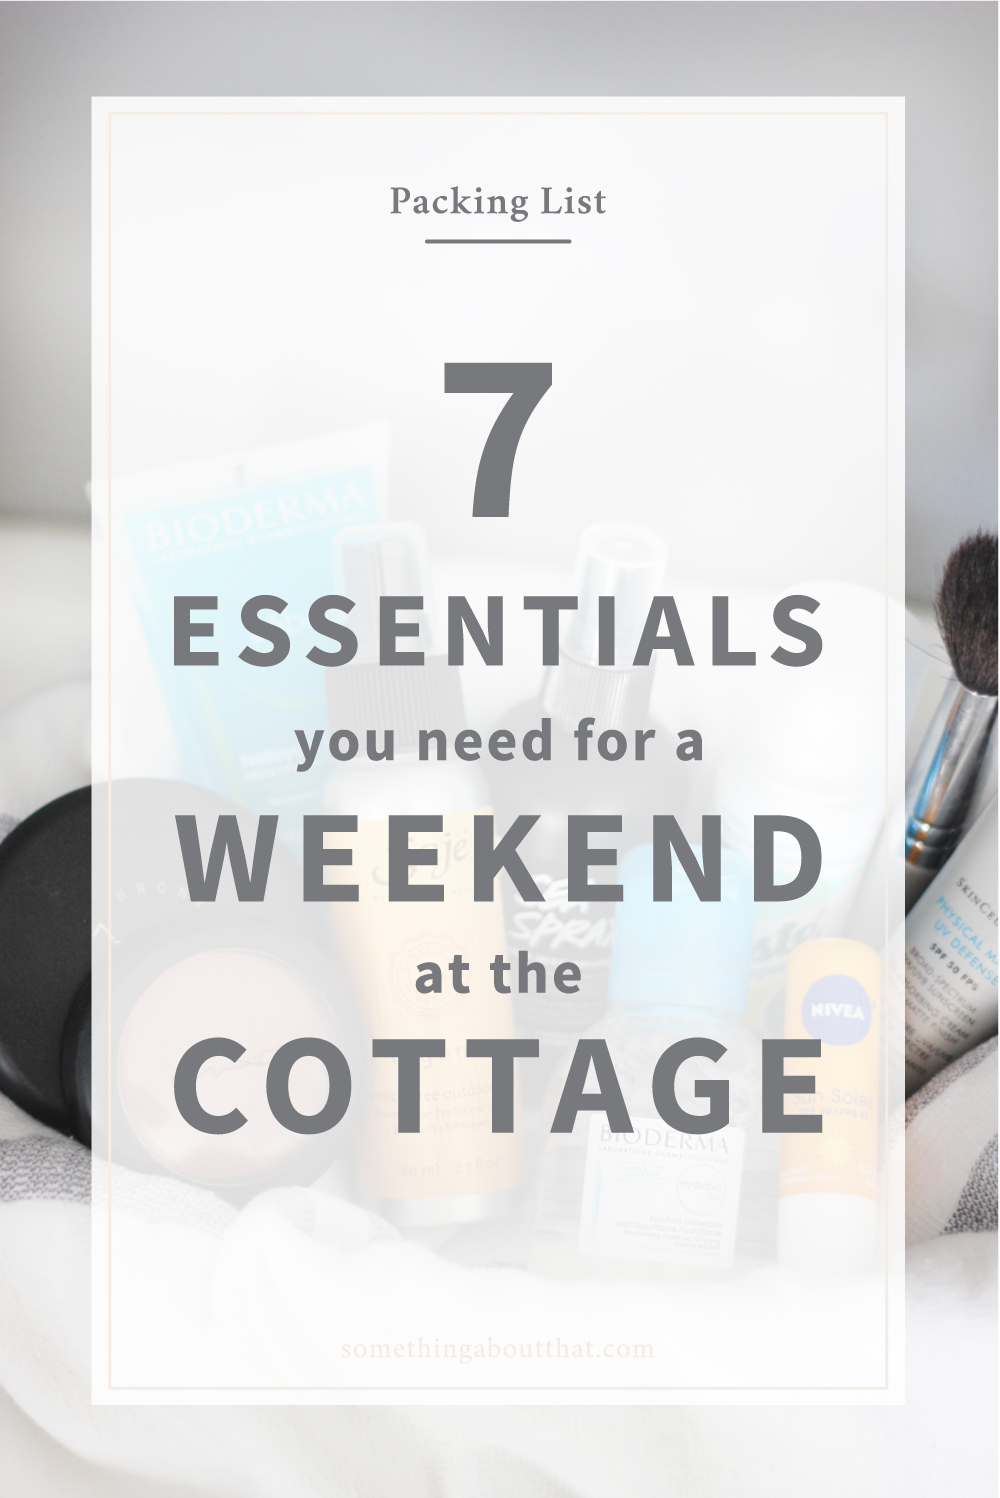 Travel essentials you need to pack for a weekend at the cottage or cabin